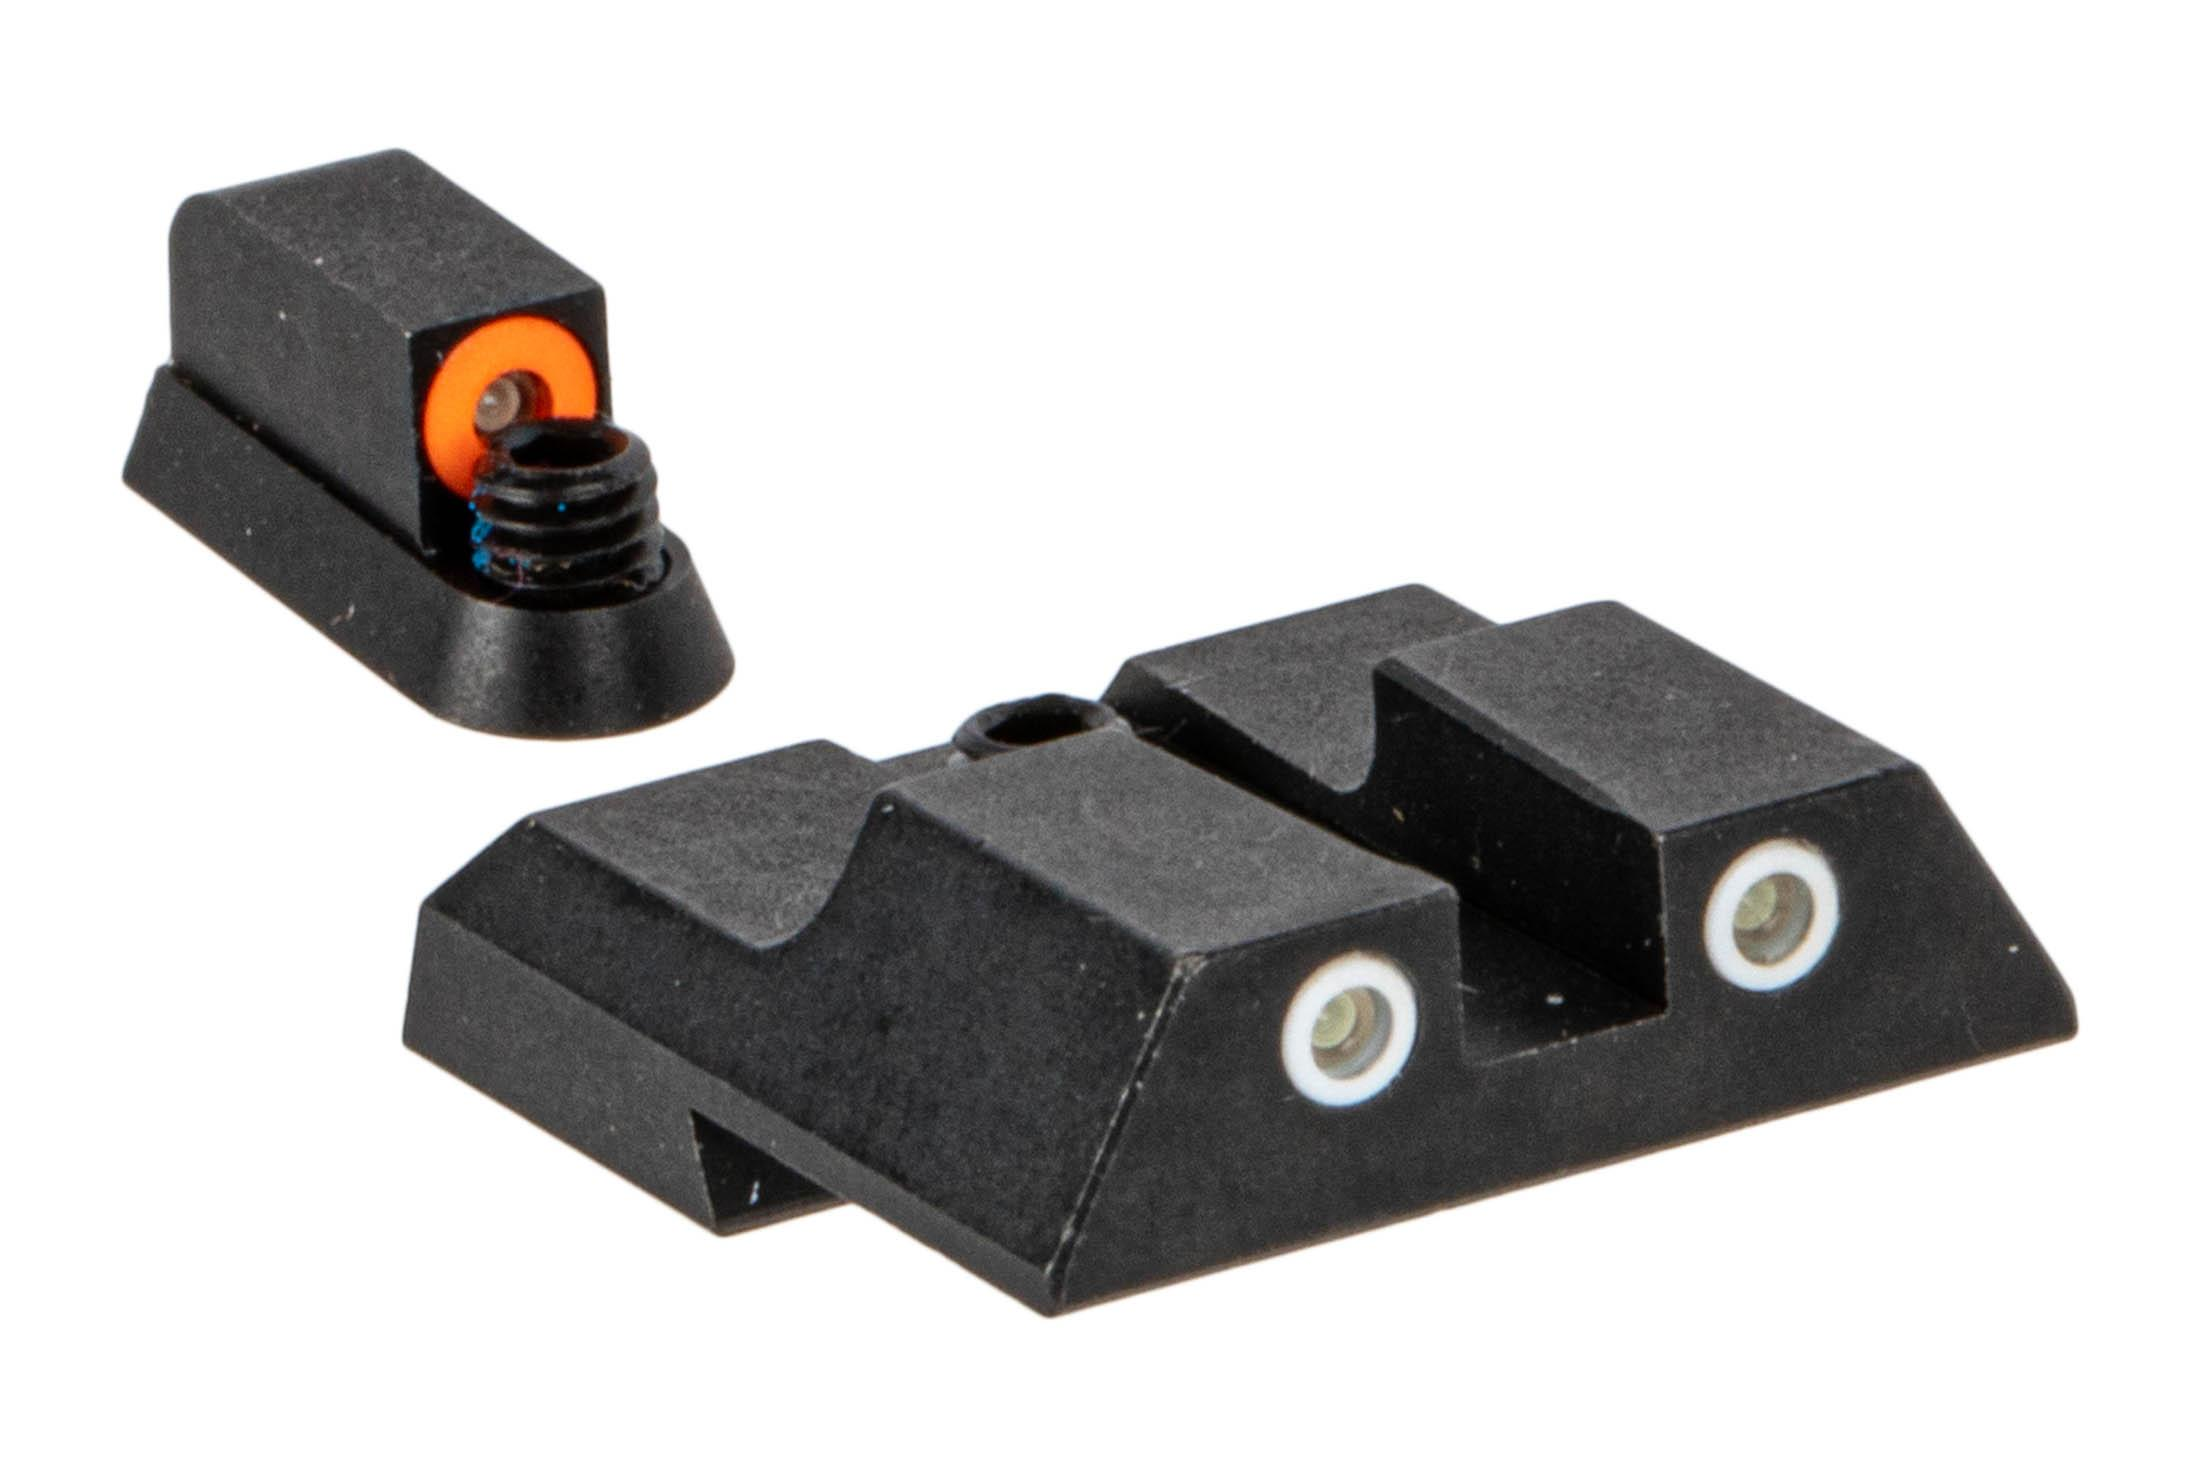 Night Fision Perfect Dot Night Sight Set with square notch, Orange front and White rear ring for CZ P07/P09 handguns